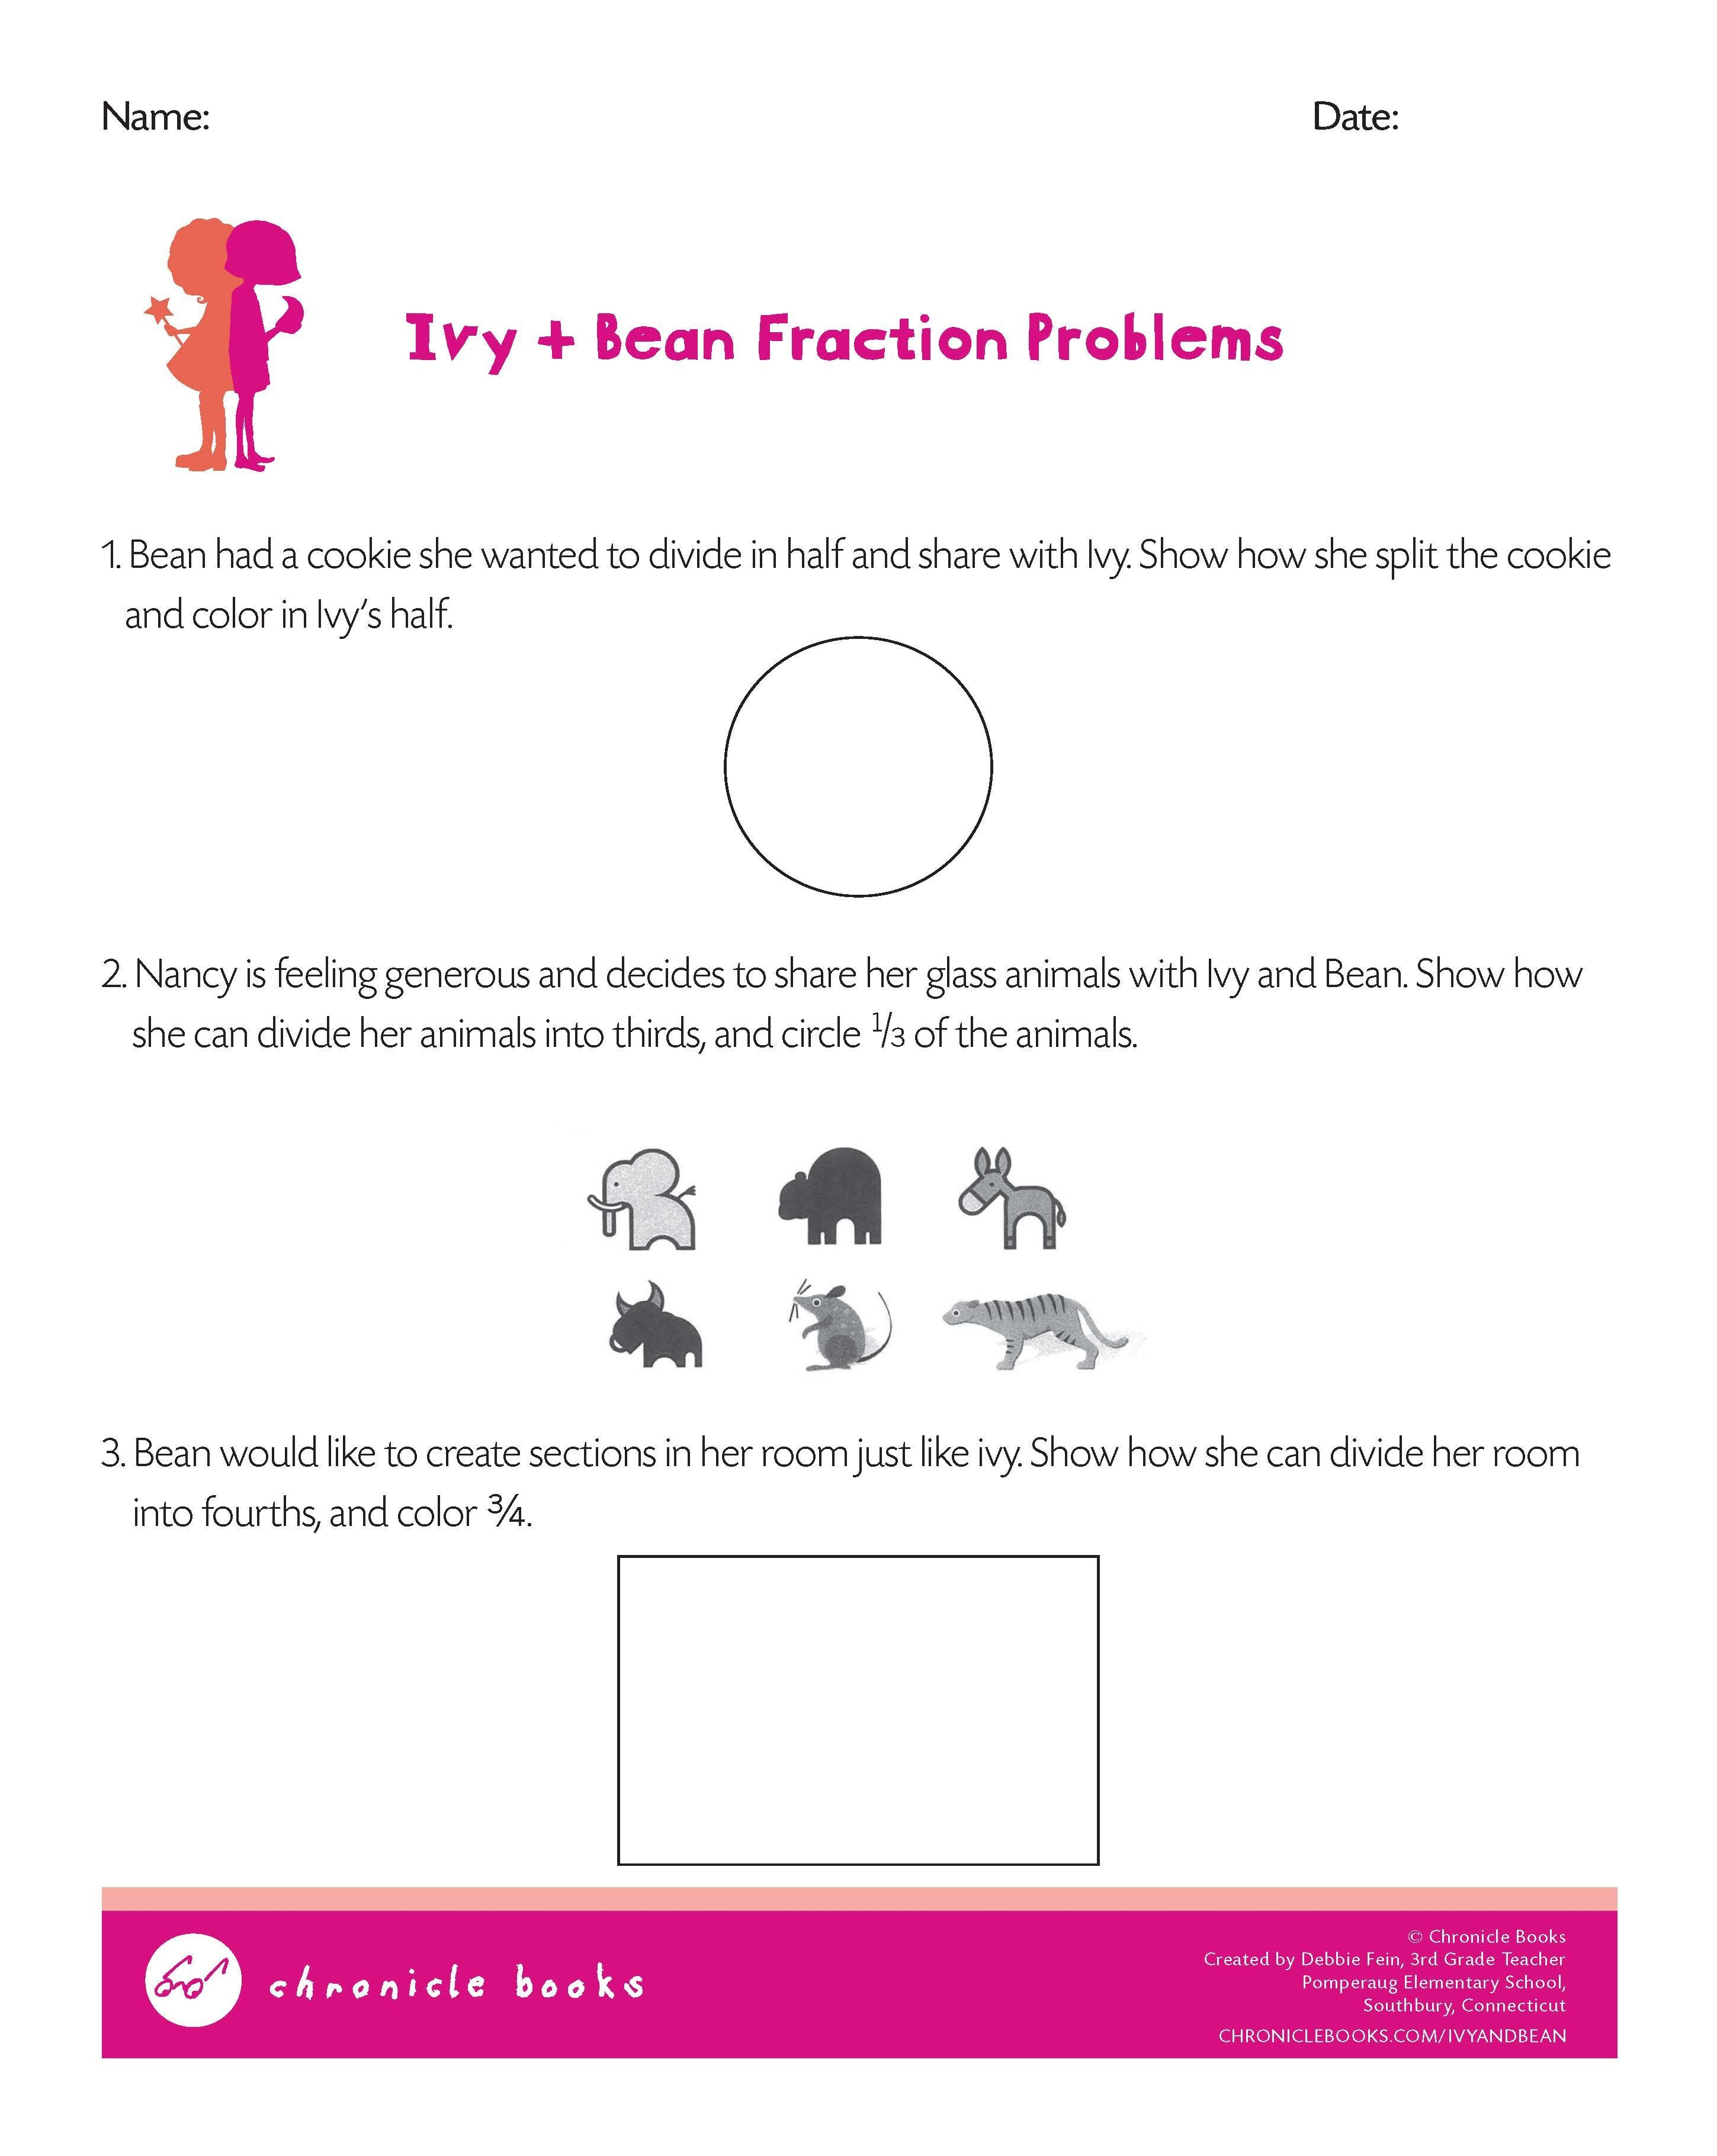 Ivy And Bean Fraction Problems Math Worksheet | For Ivy + Bean Fans - Indian In The Cupboard Free Printable Worksheets